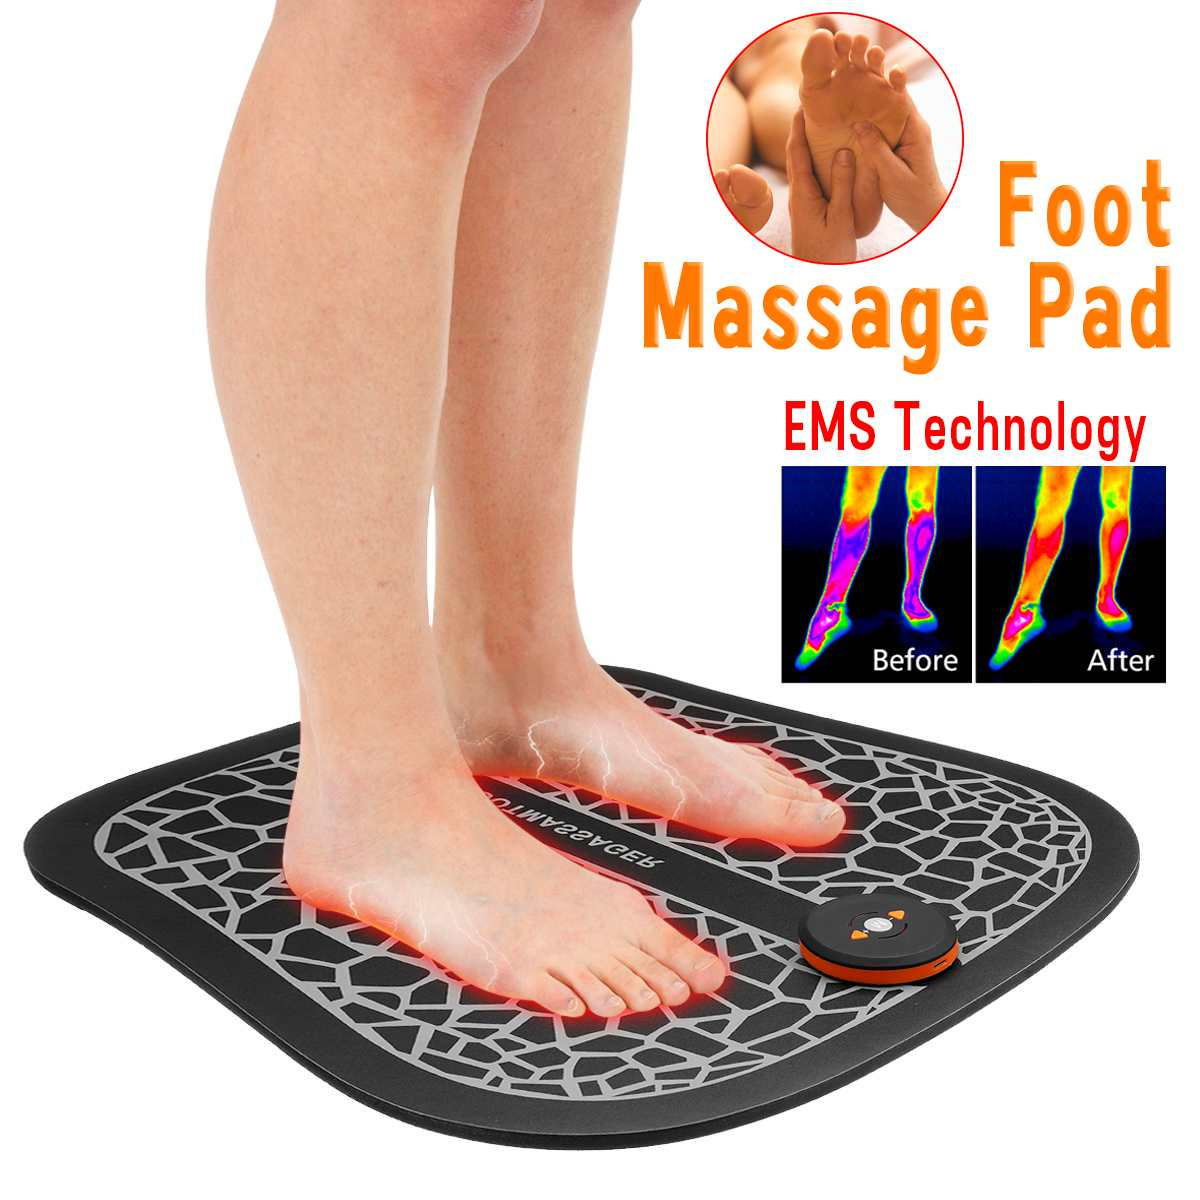 EMS Physiotherapy Foot Massage Mat Pad Electric Muscle Stimulator Vibrator Massager Pain Relief Feet Foot Spa Relaxation